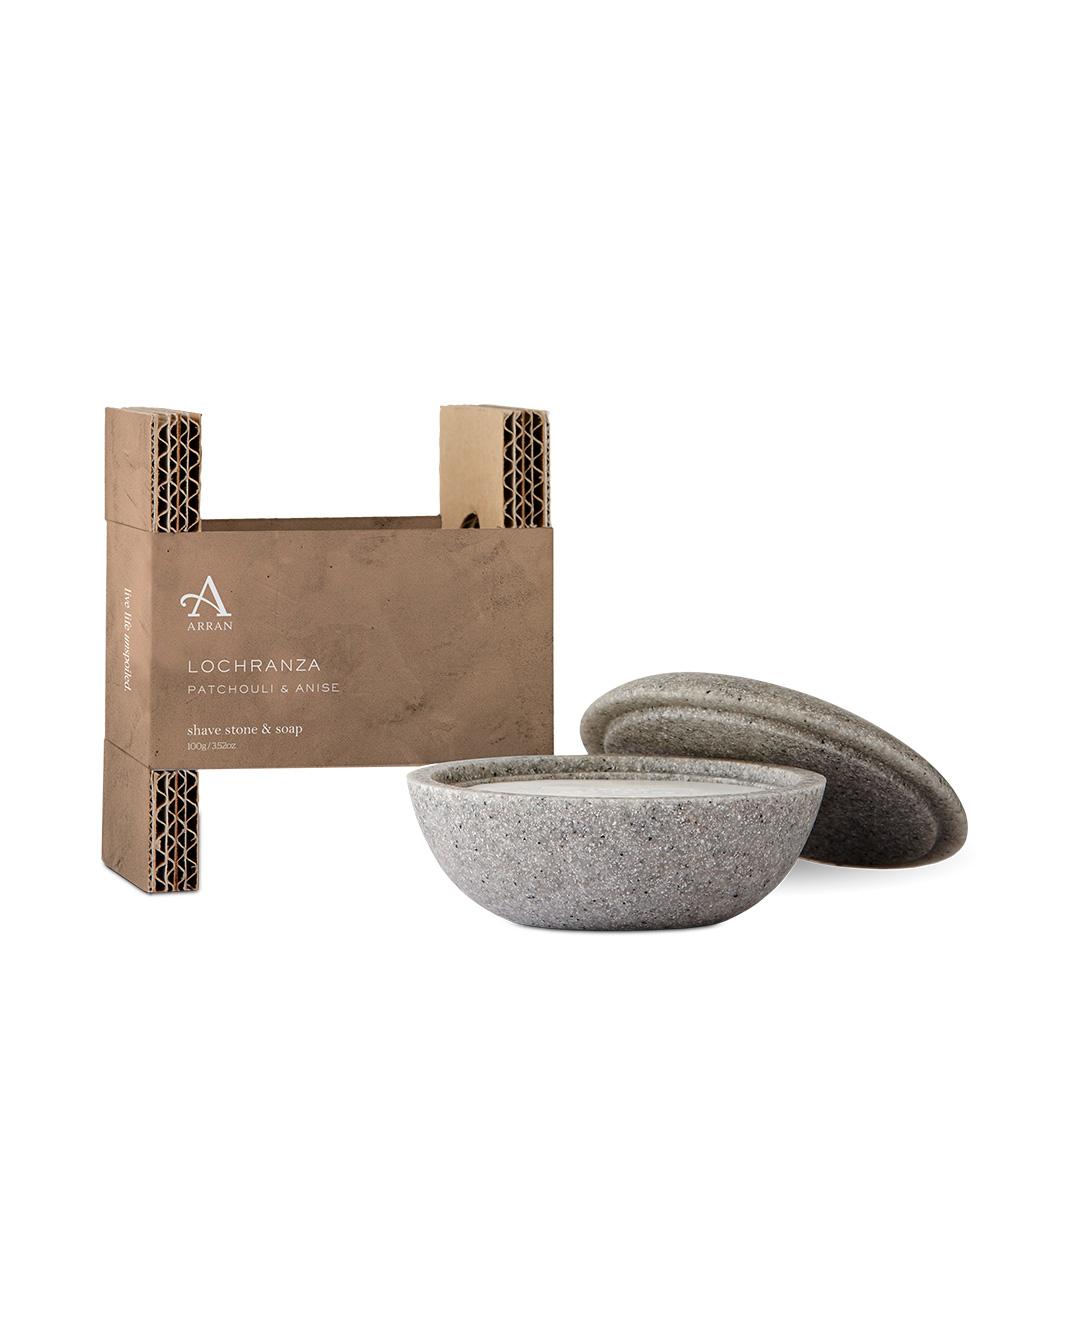 Arran Lochranza Shave Stone and Soap 100g